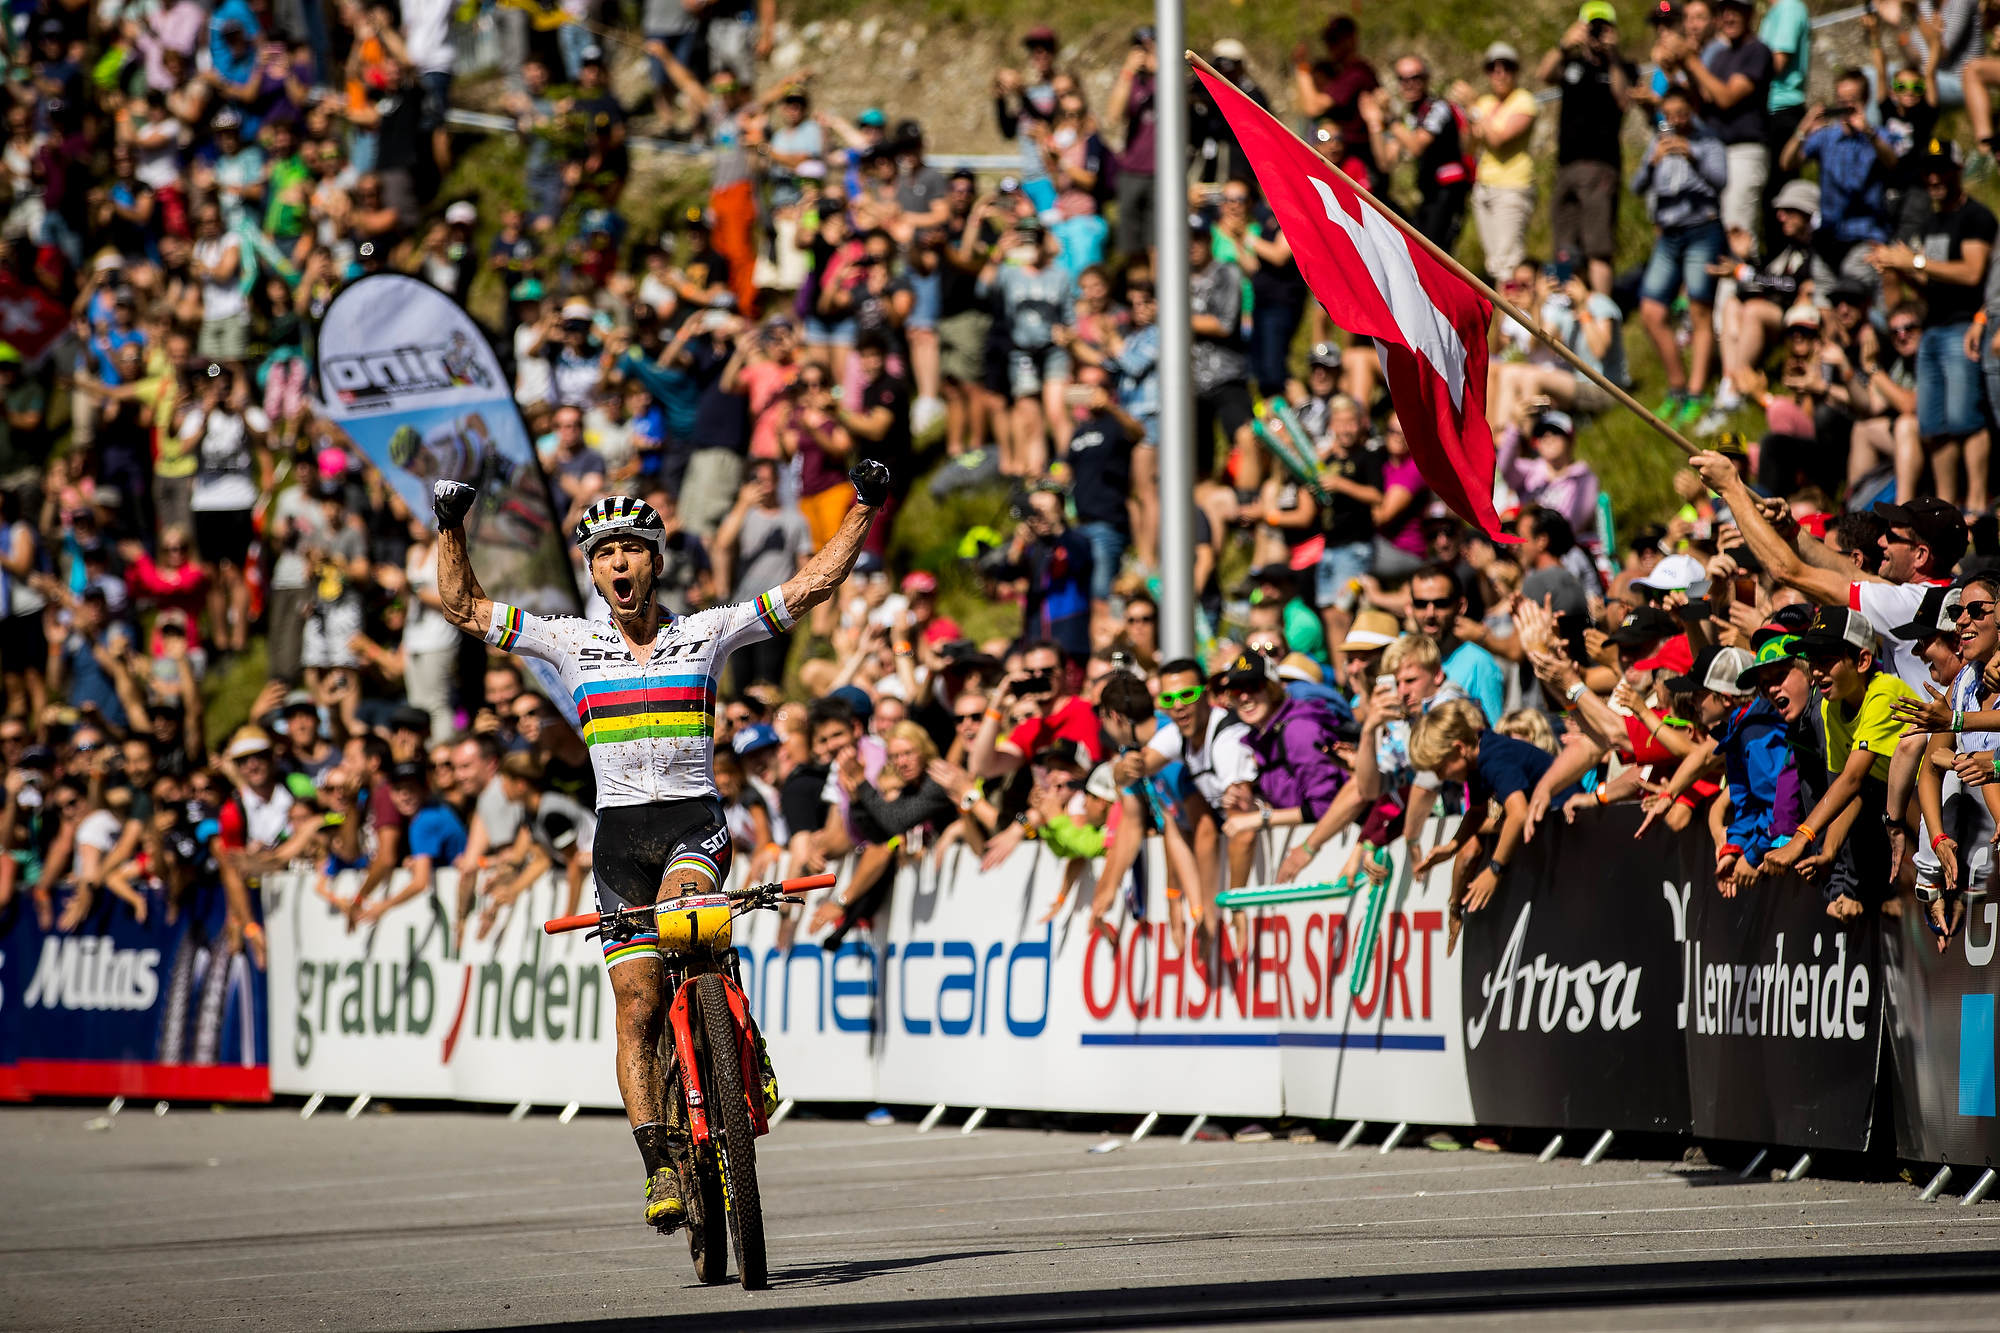 Mountainbike World Cup Kalender 2019